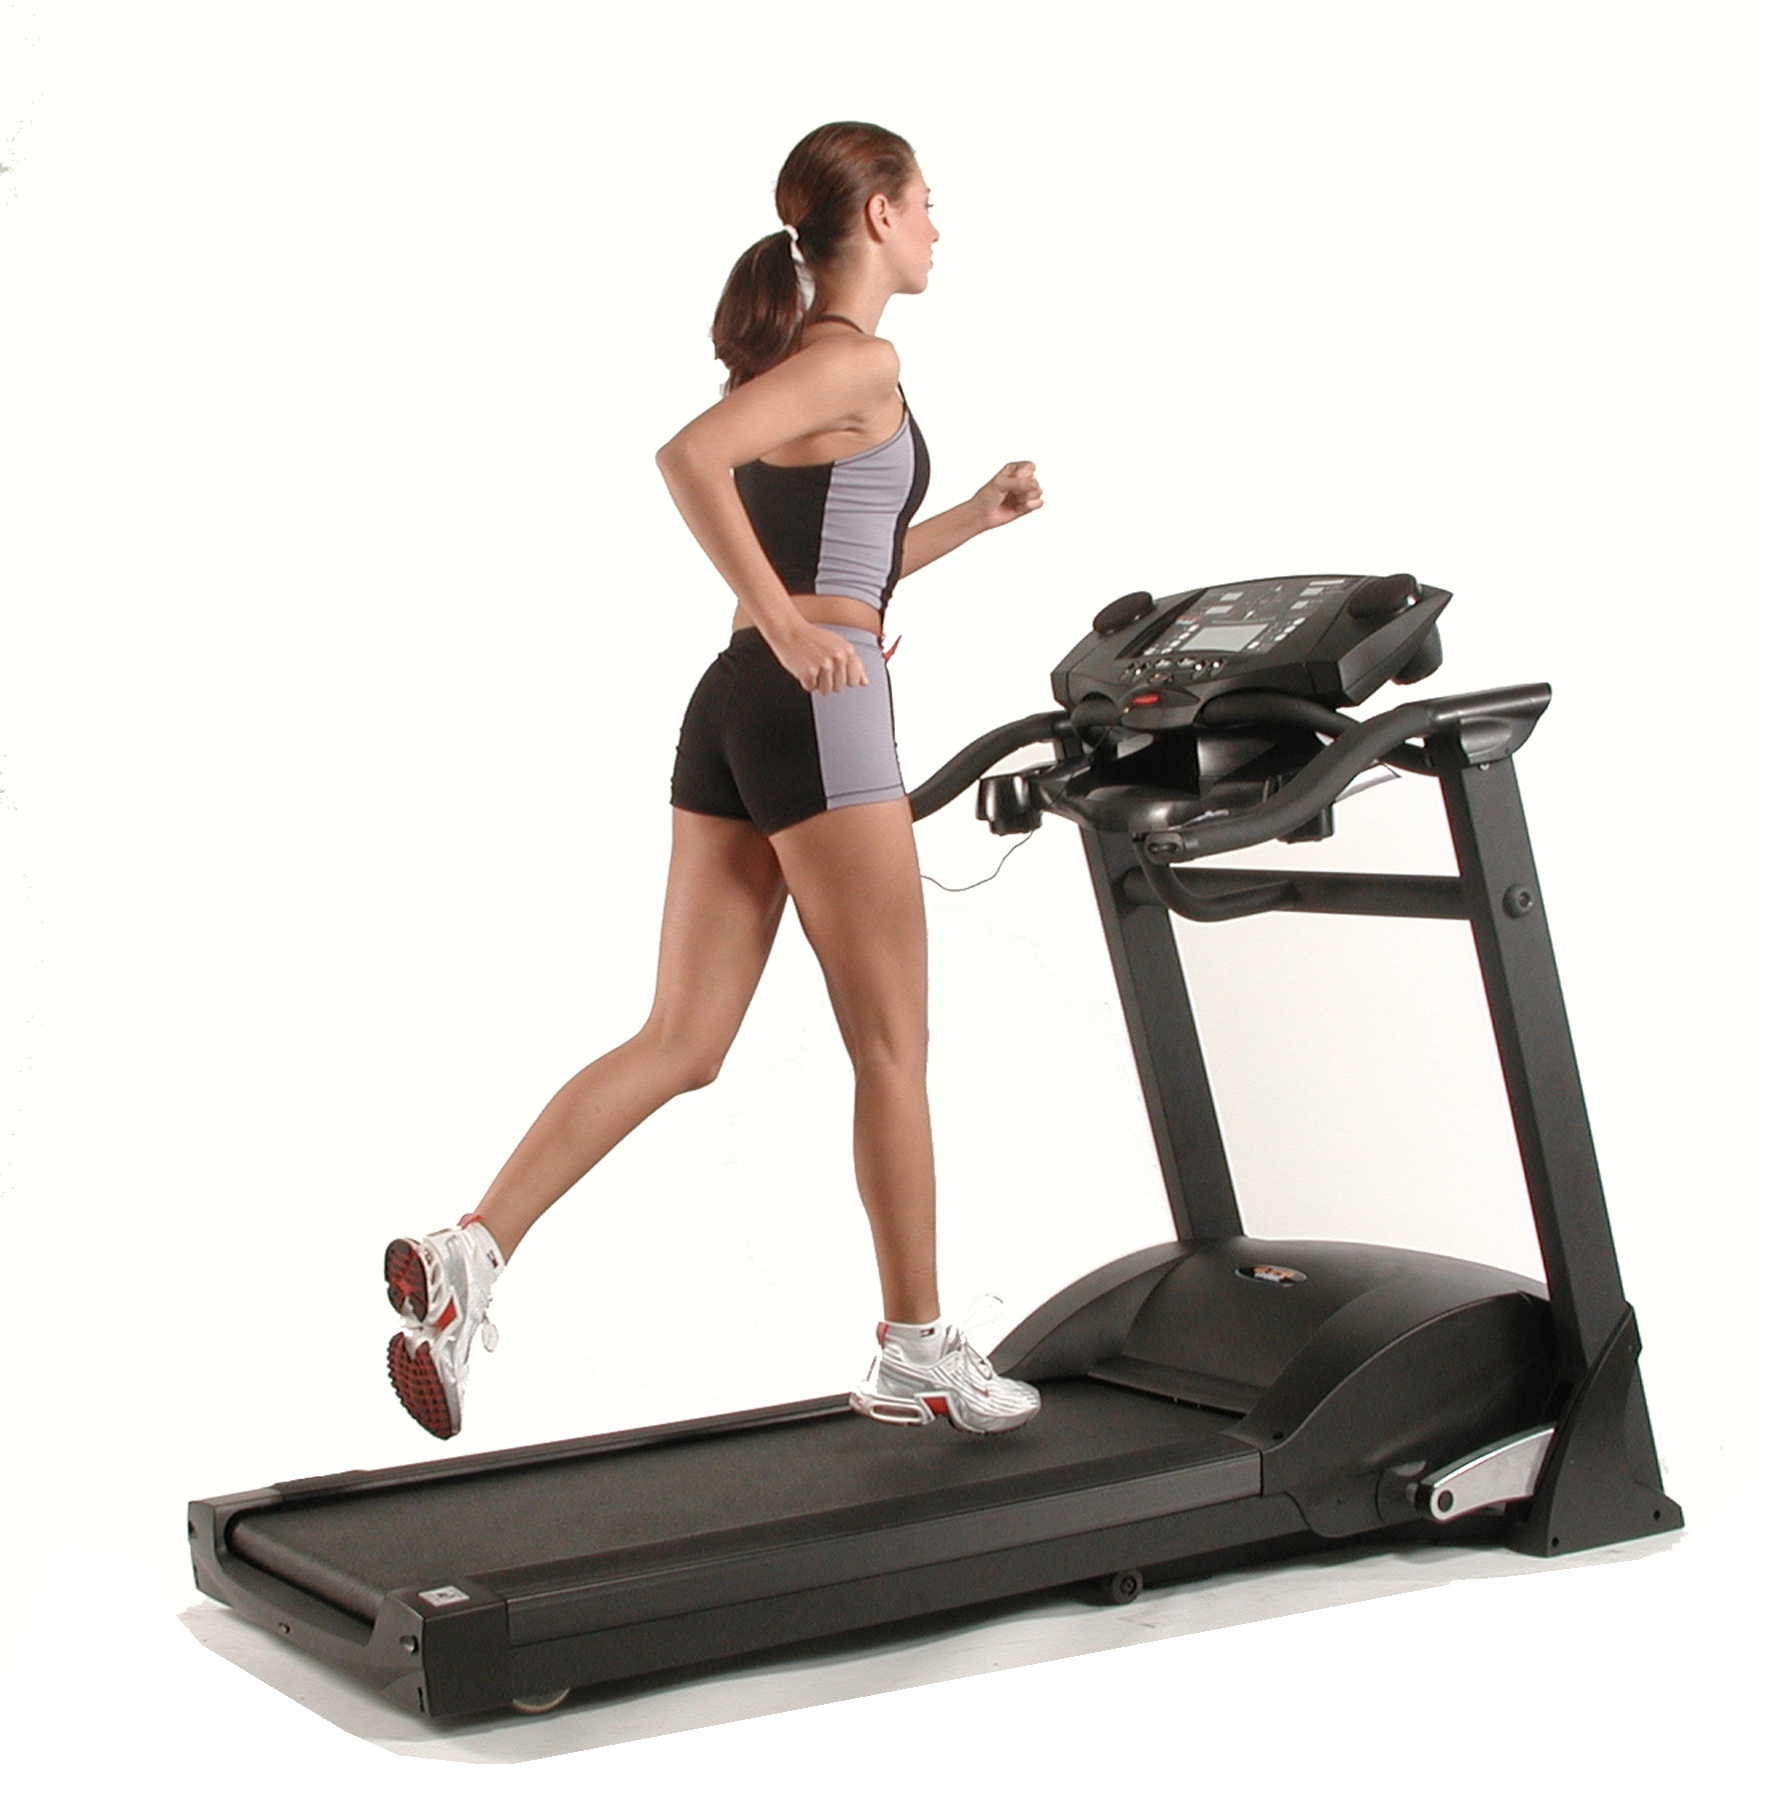 workout exercise machine